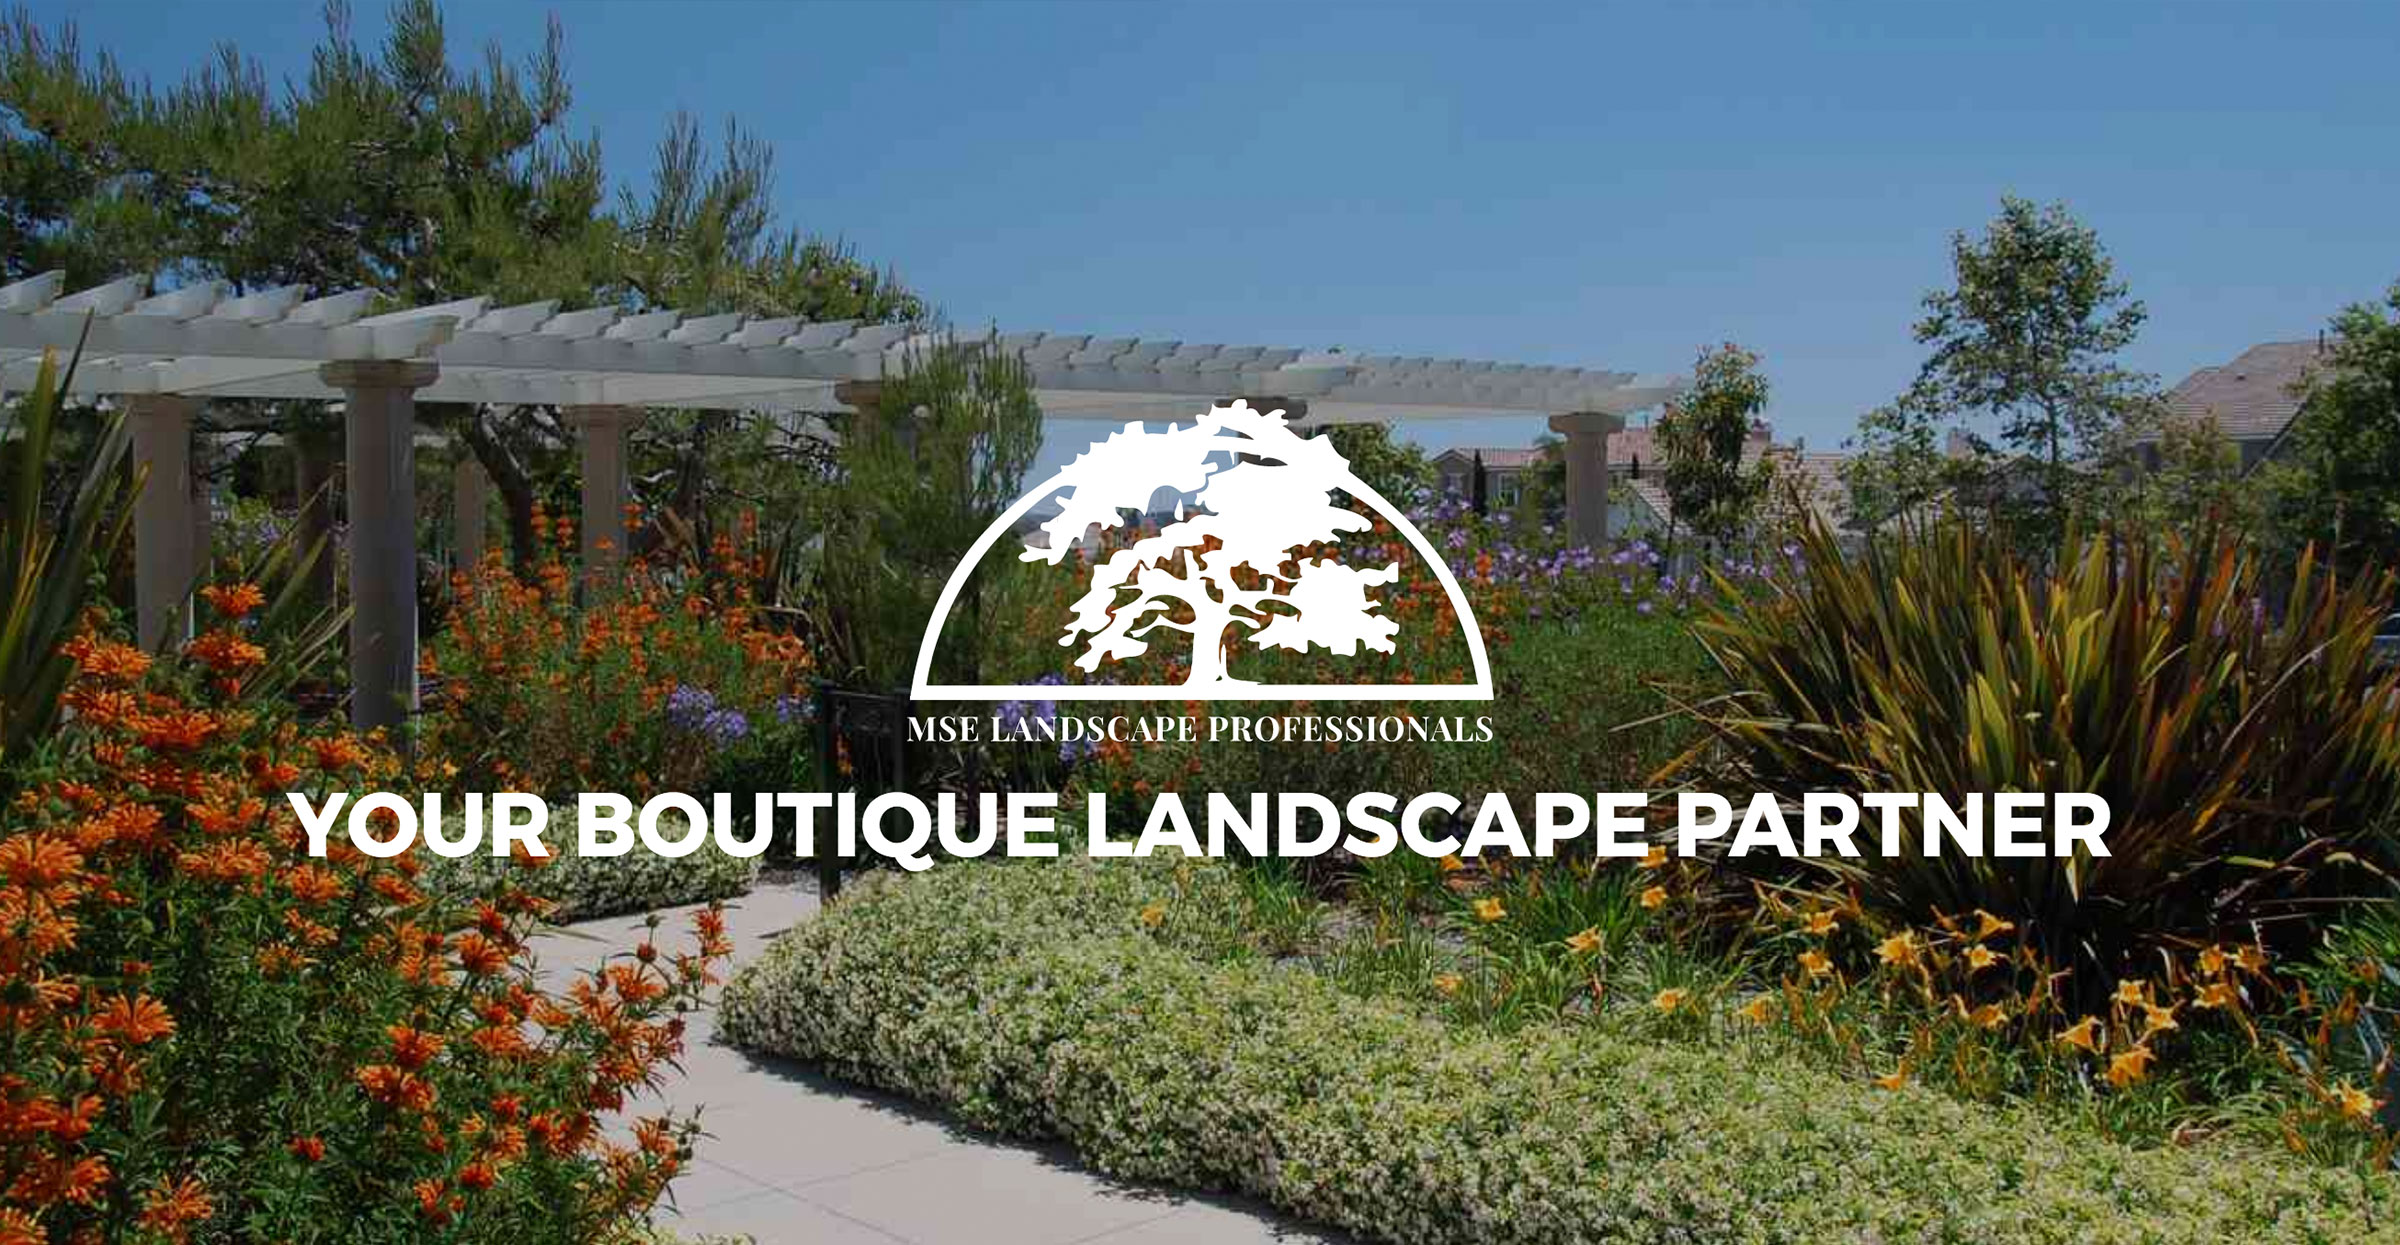 Plant Nurseries - how urban landscaping is born